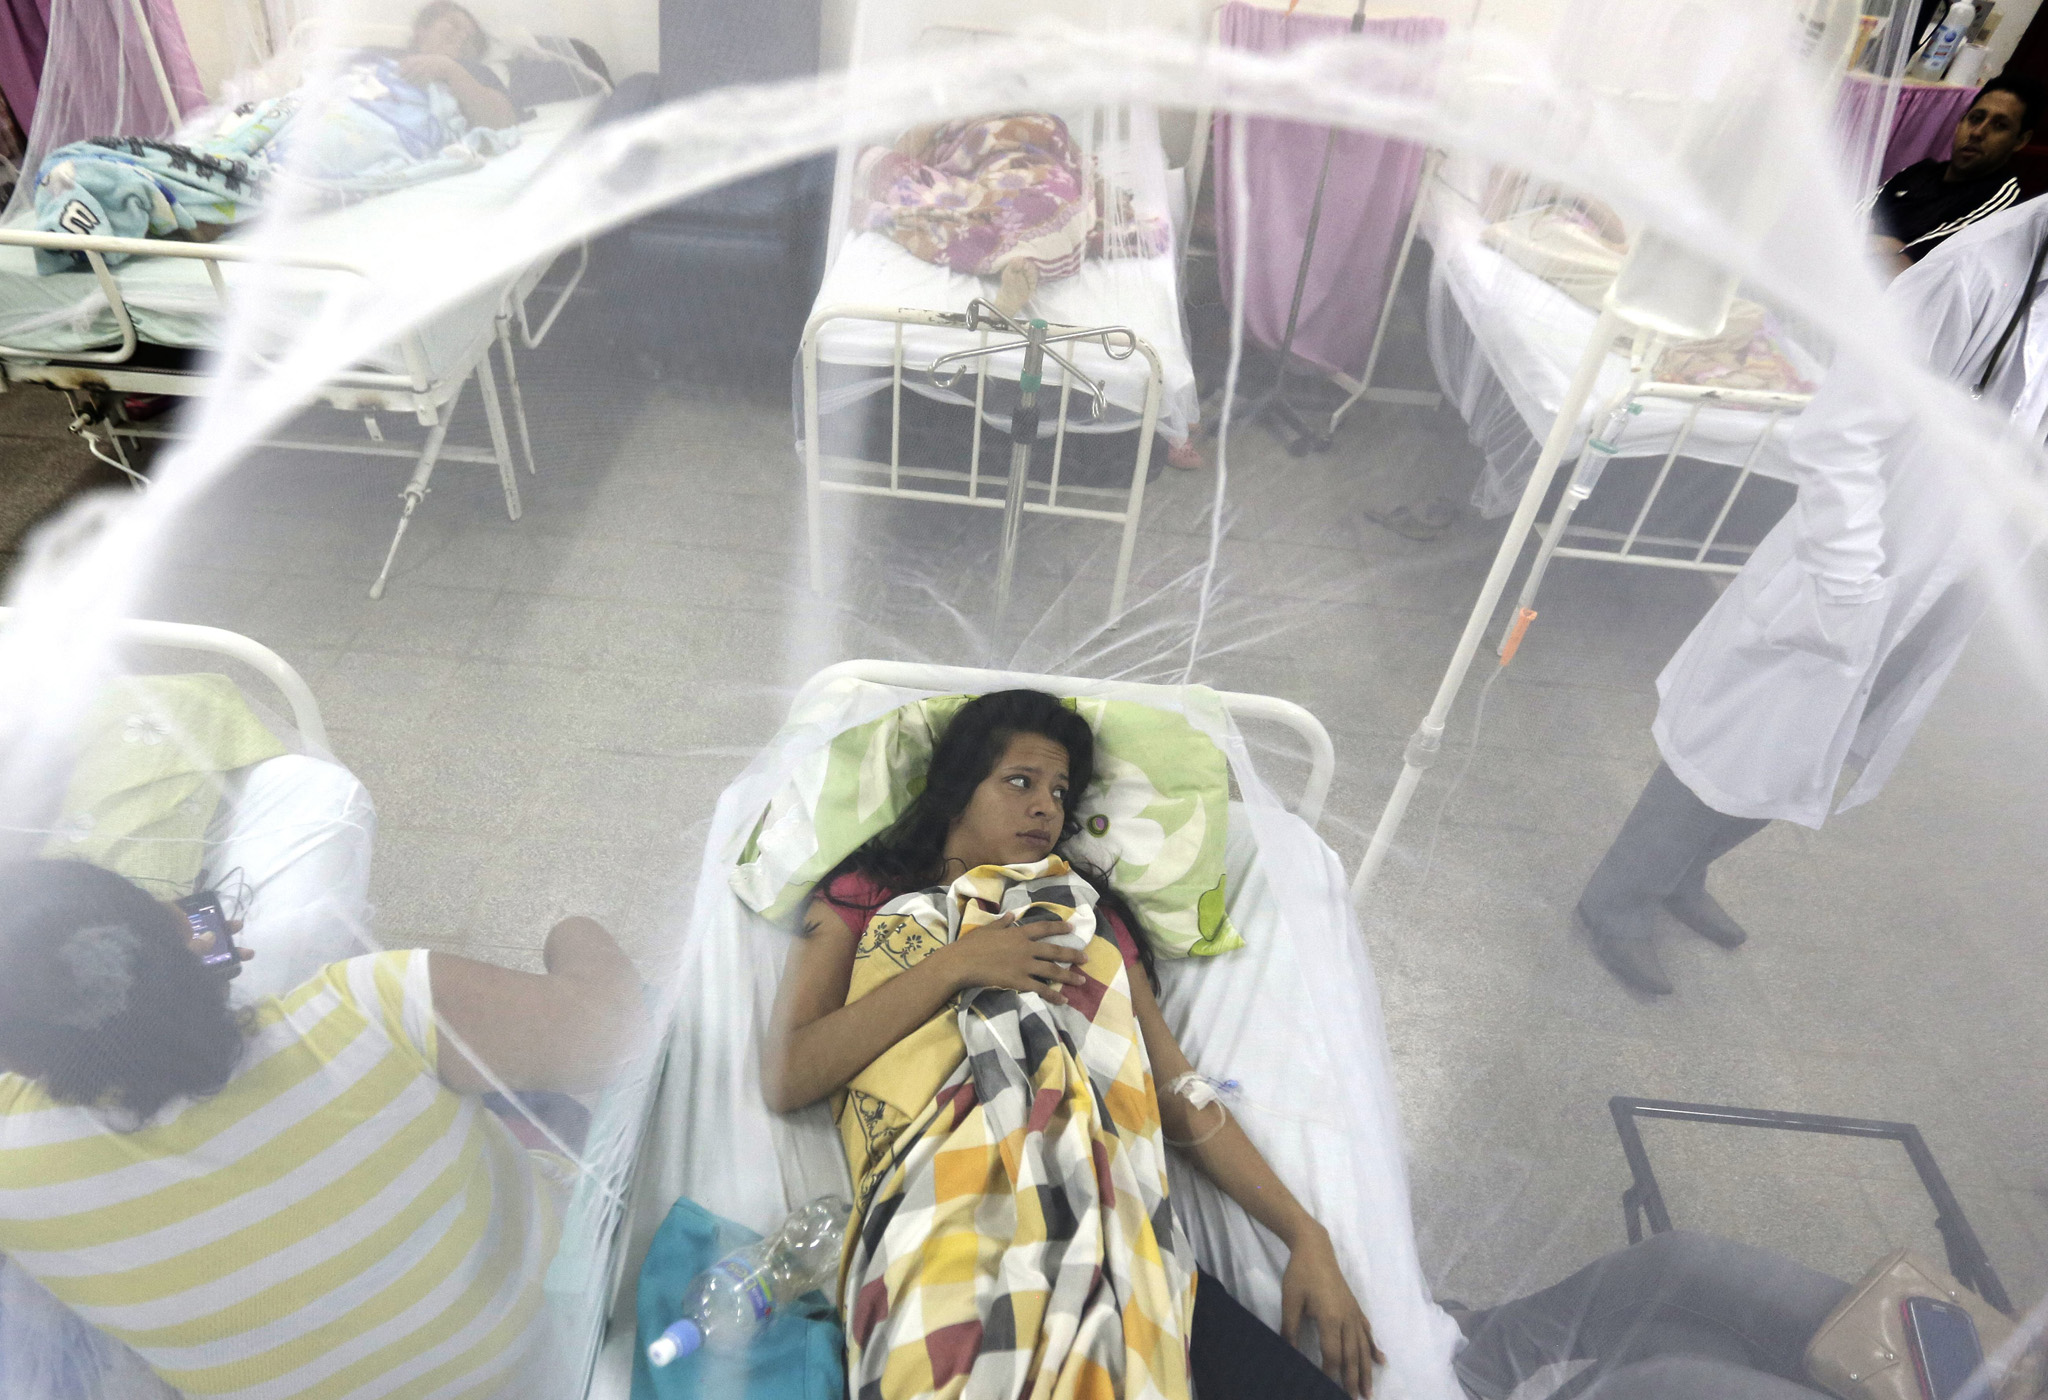 Protected by a mosquito net, Nadia Gonzalez recovers from a bout of dengue fever at a hospital in Luque, Paraguay Friday, Feb. 5, 2016. Dengue, like the Zika virus, is transmitted by the same vector, the Aedes aegypti mosquito. Zika was discovered in a Ugandan forest in 1947 and until last year, the virus had never caused serious disease. It has now spread to more than 20 countries. (AP Photo/Jorge Saenz)